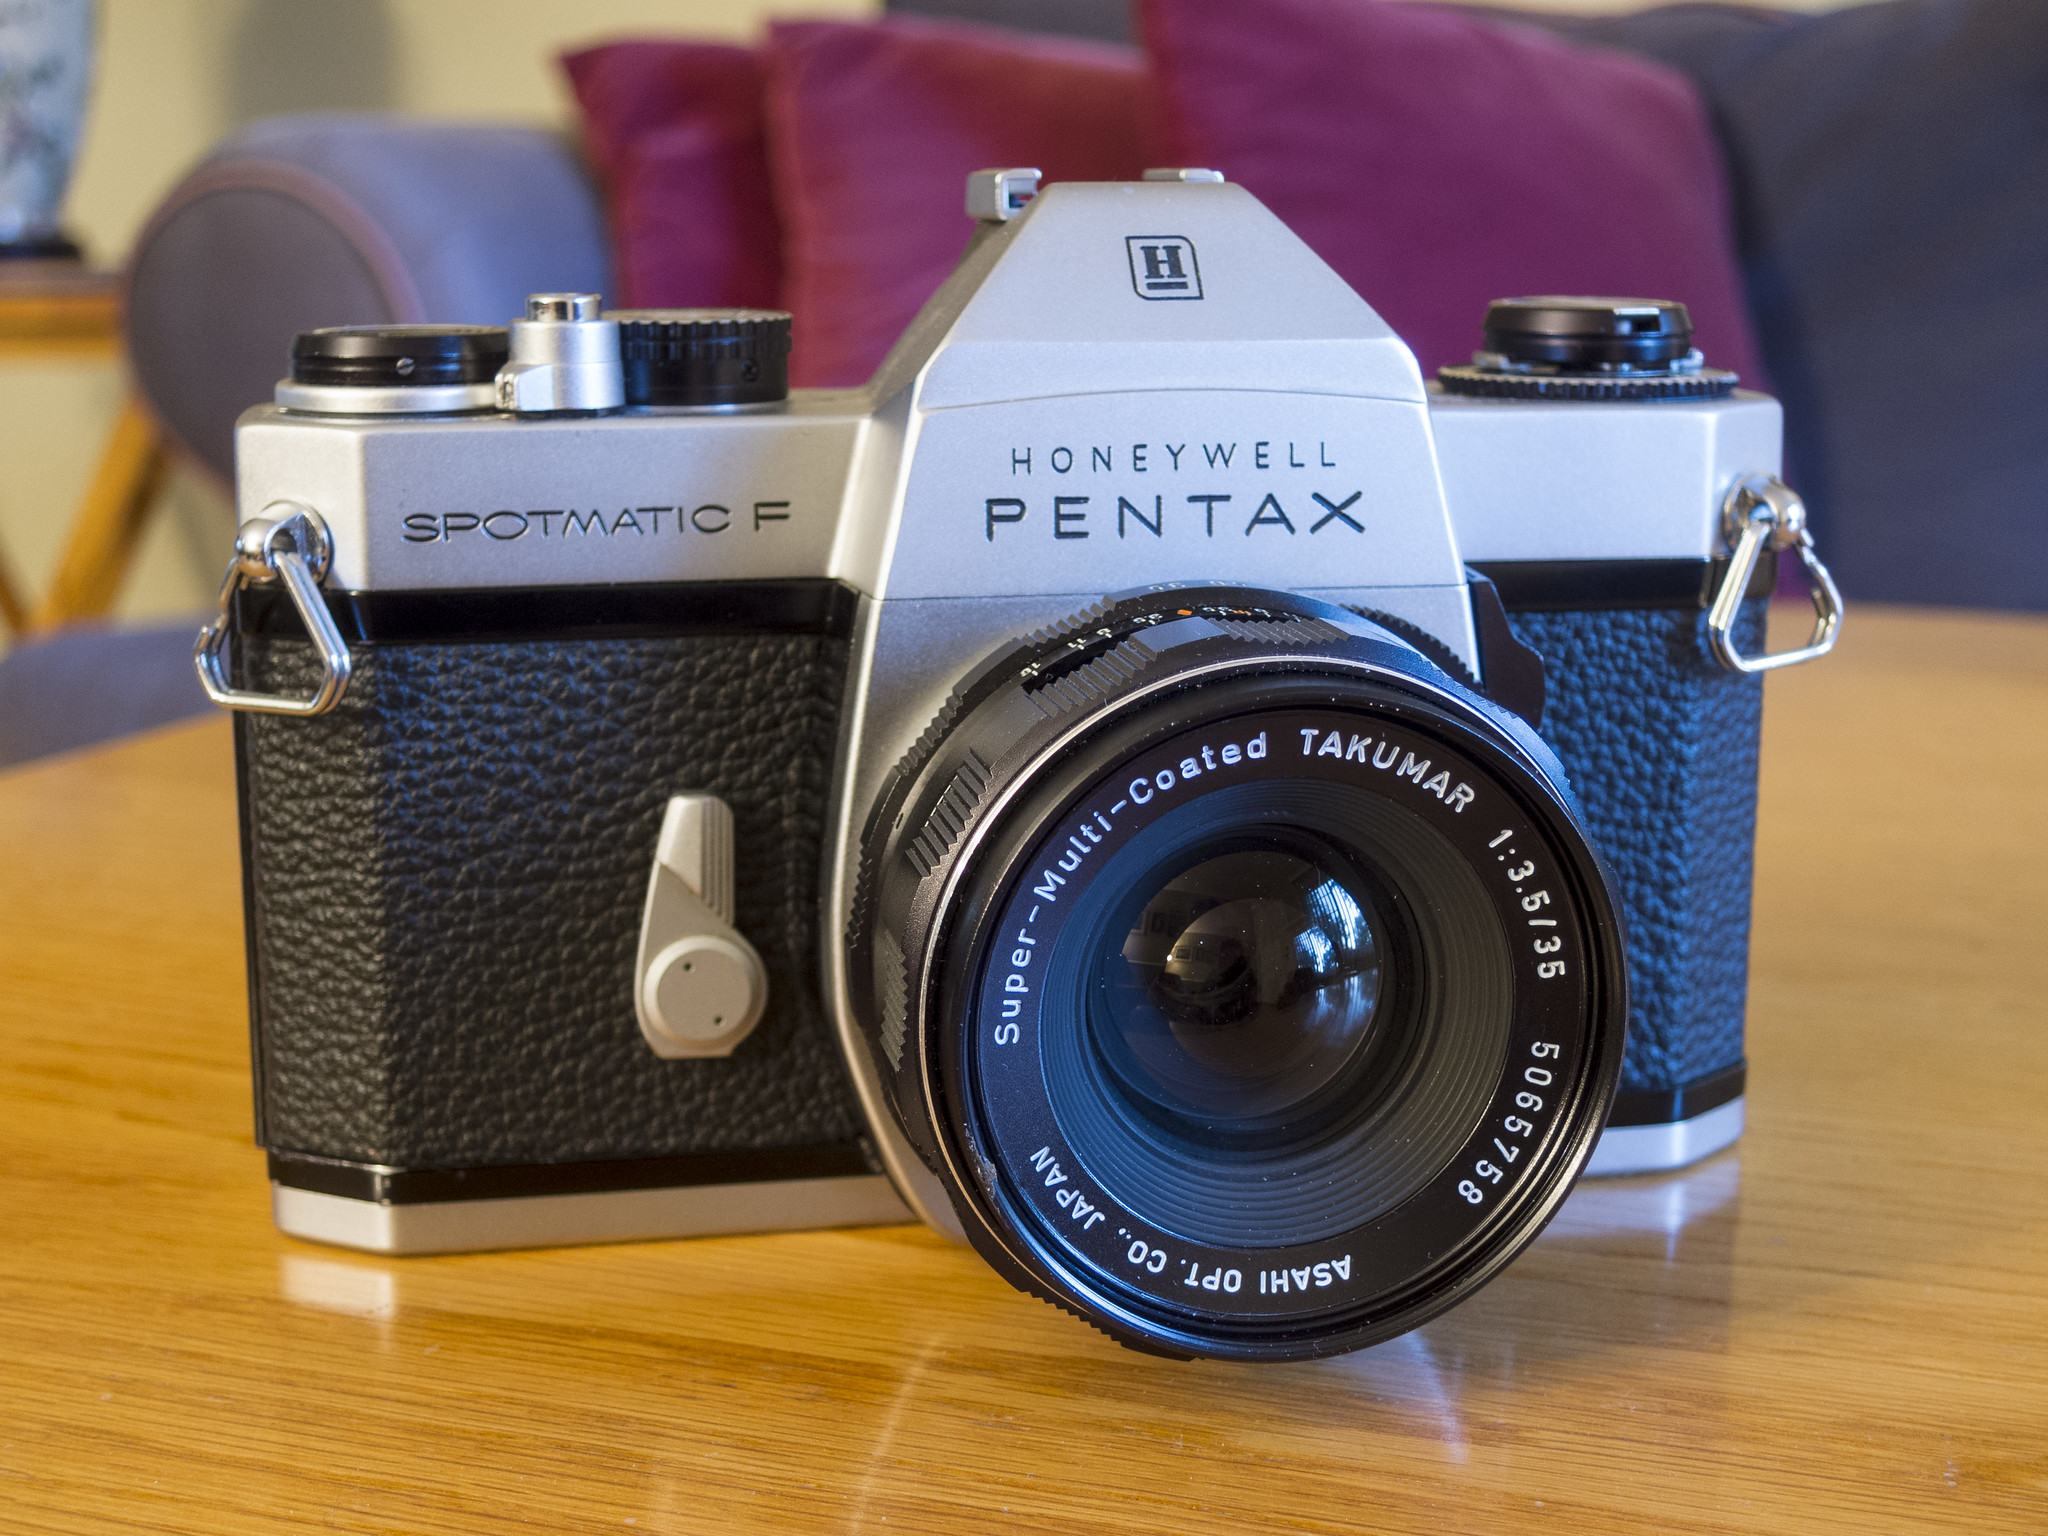 Pentax Spotmatic F (Pic: Jim Grey/Flickr)